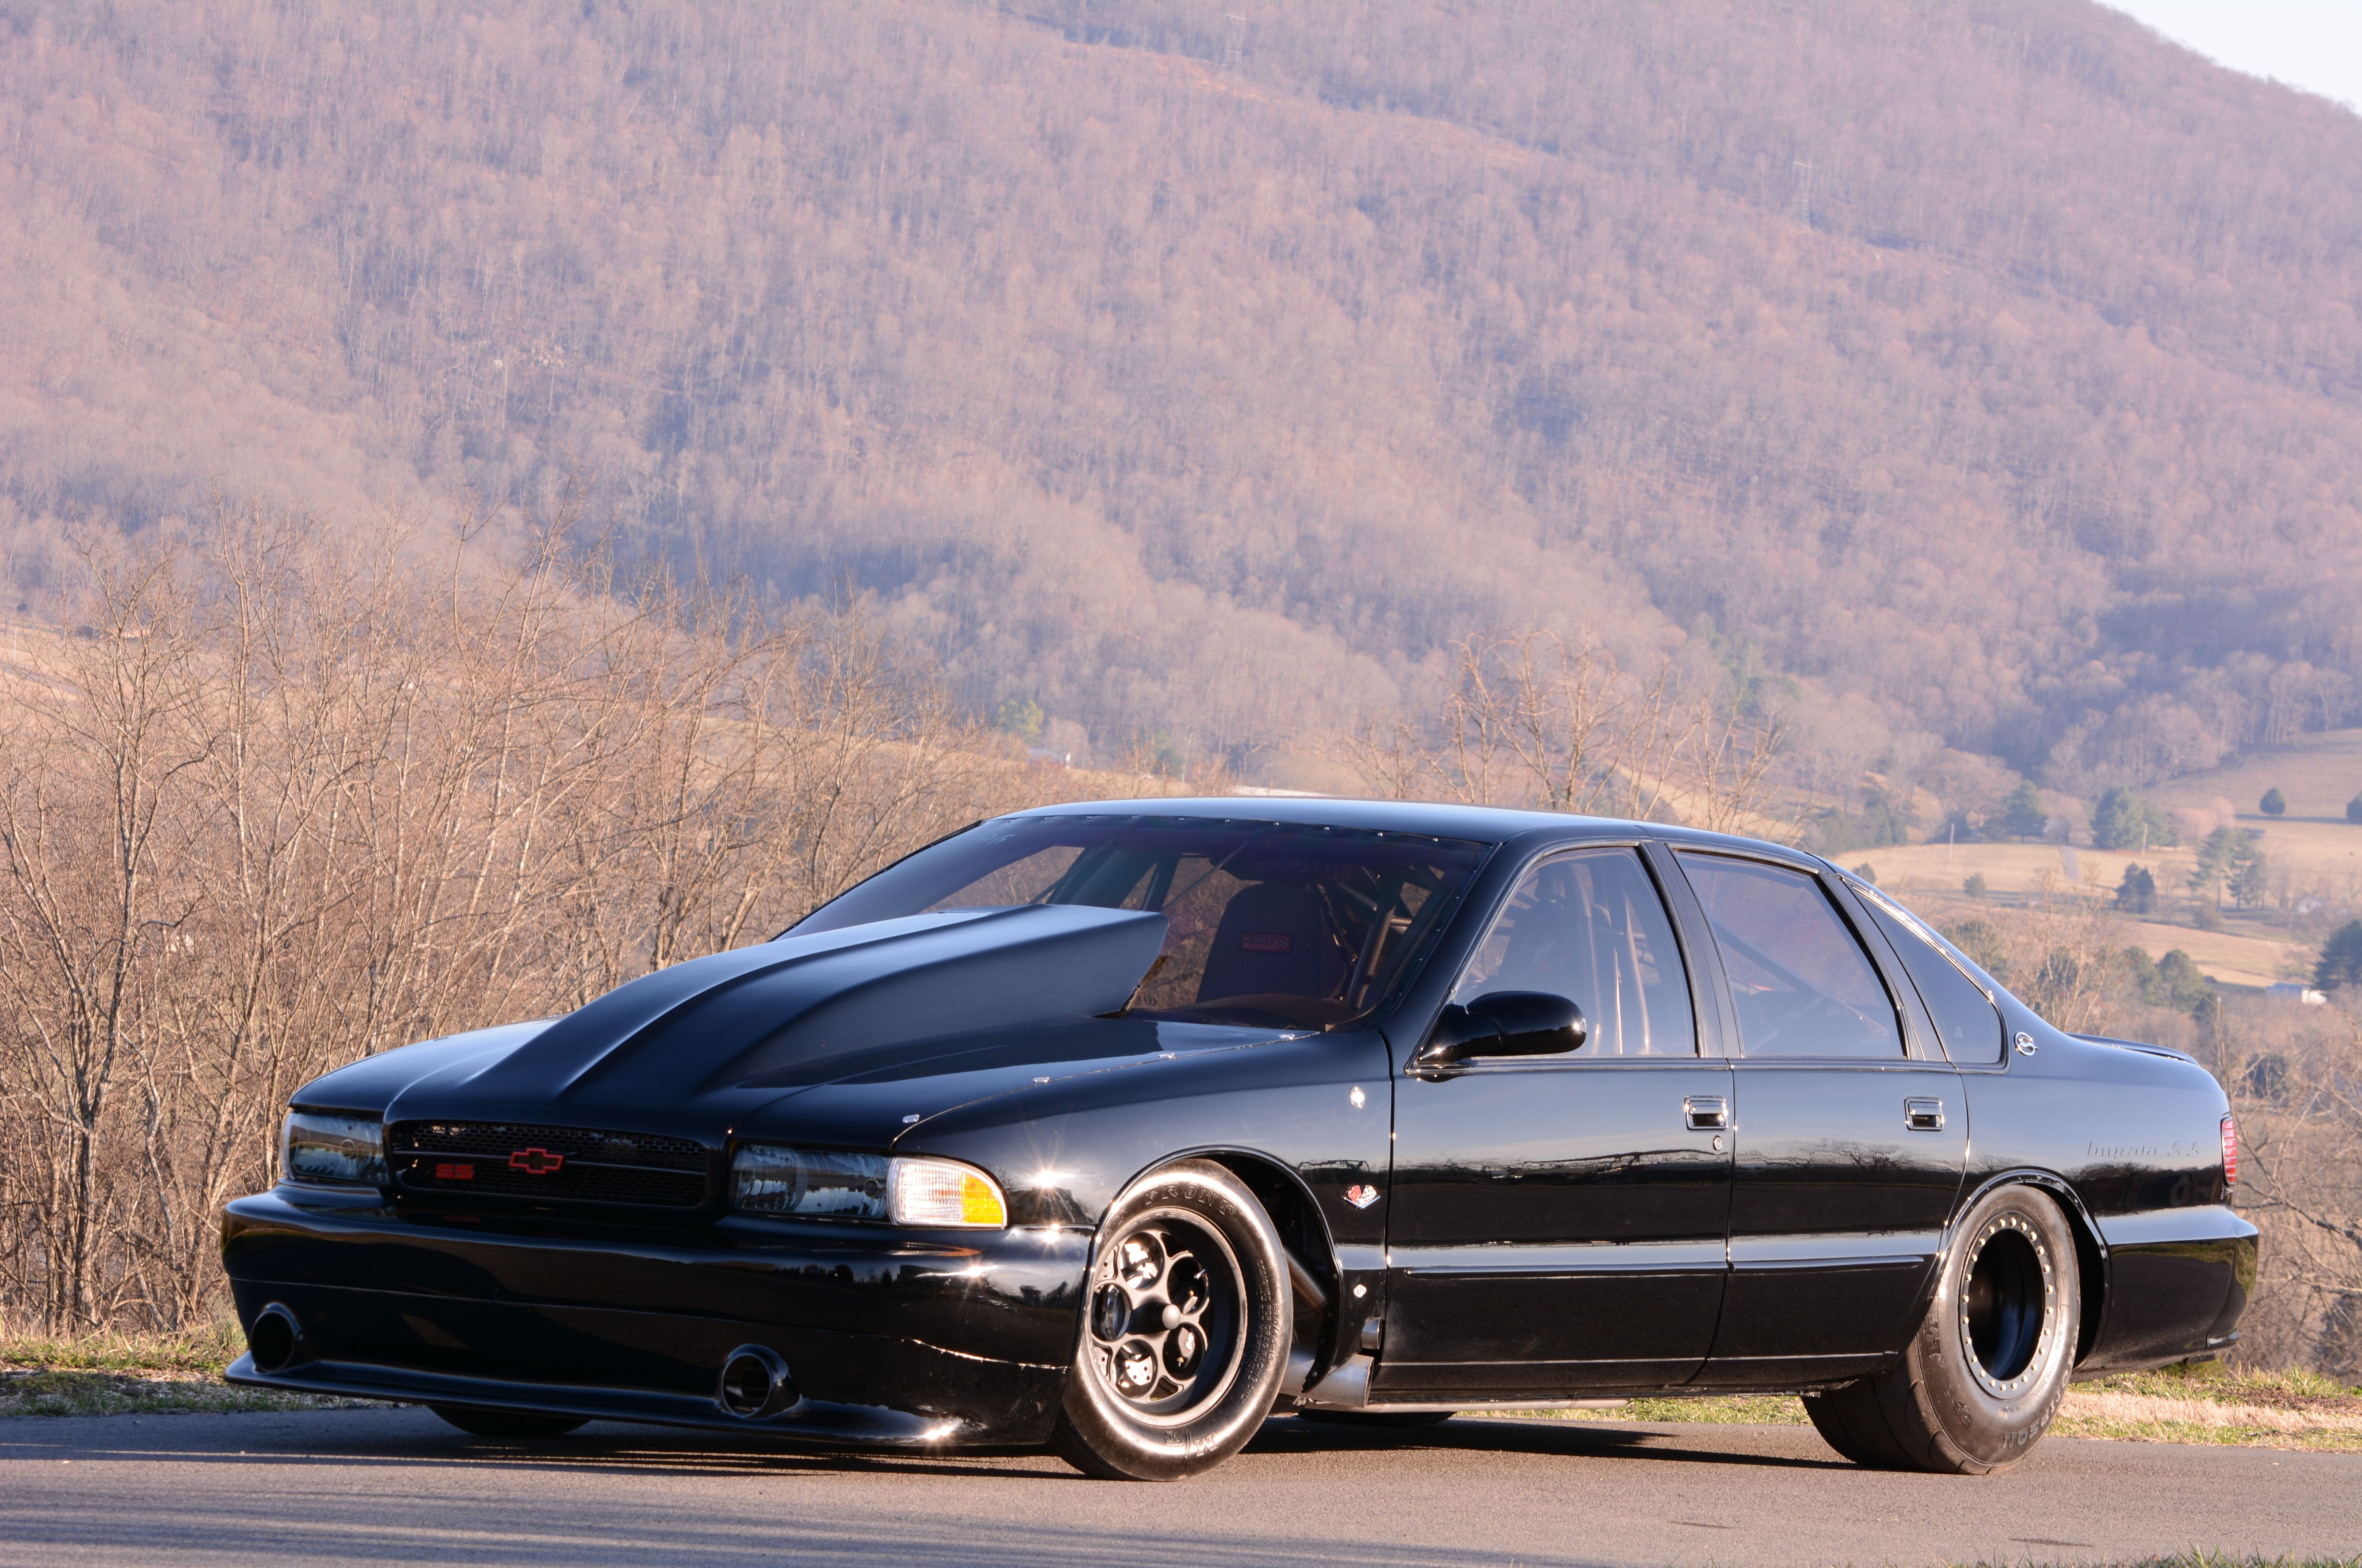 Rick wetherbees bad in black 1996 chevrolet impala ss is an outlaw rick wetherbees bad in black 1996 chevrolet impala ss is an outlaw drag radial fandeluxe Images